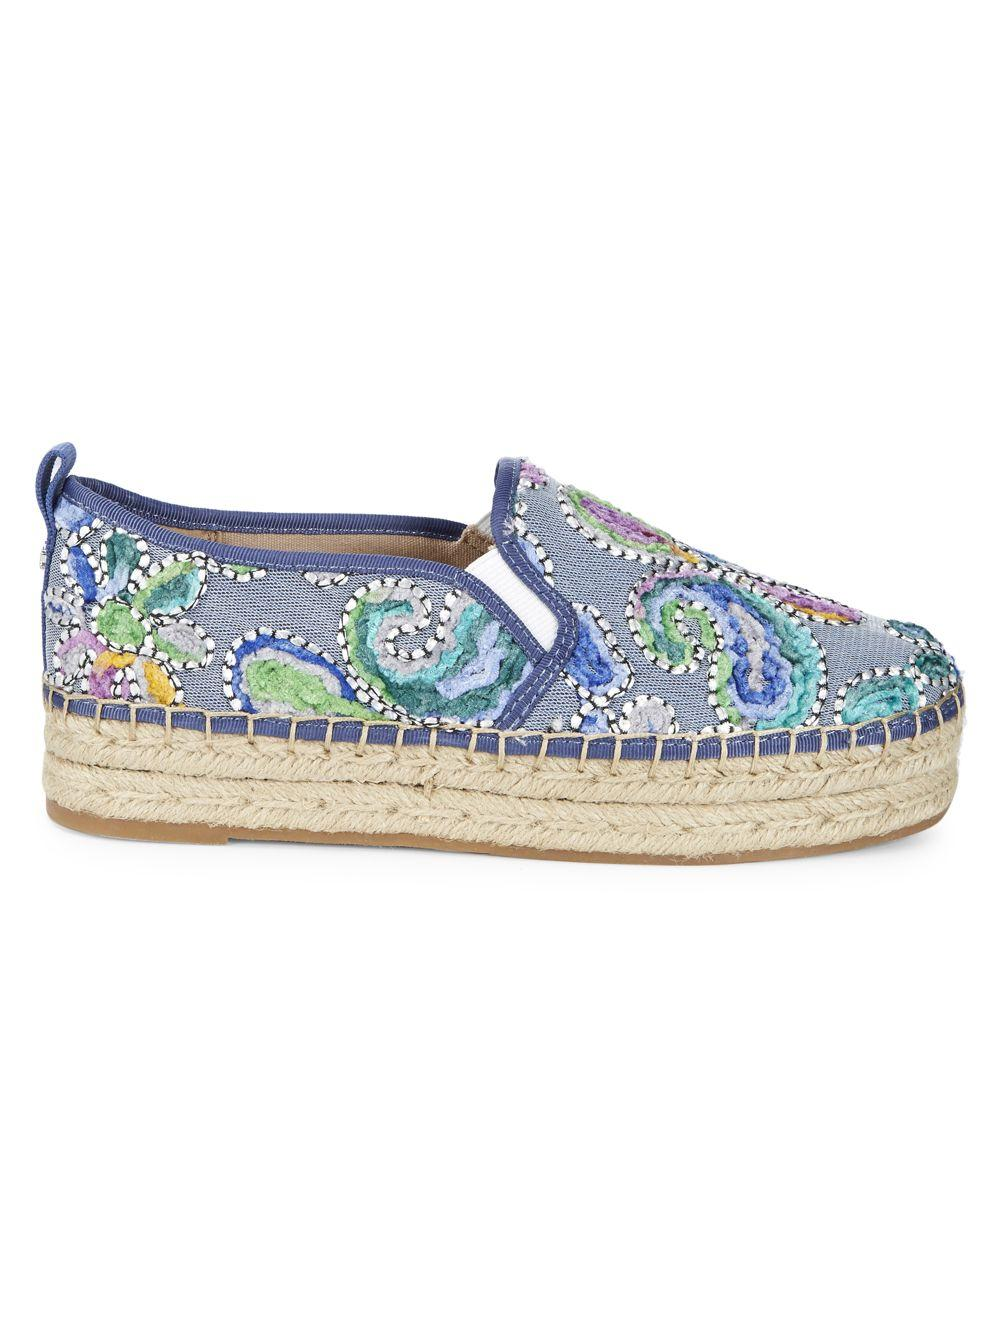 1c29140170bc Lyst - Sam Edelman Carrin Embroidered Paisley Espadrilles in Blue